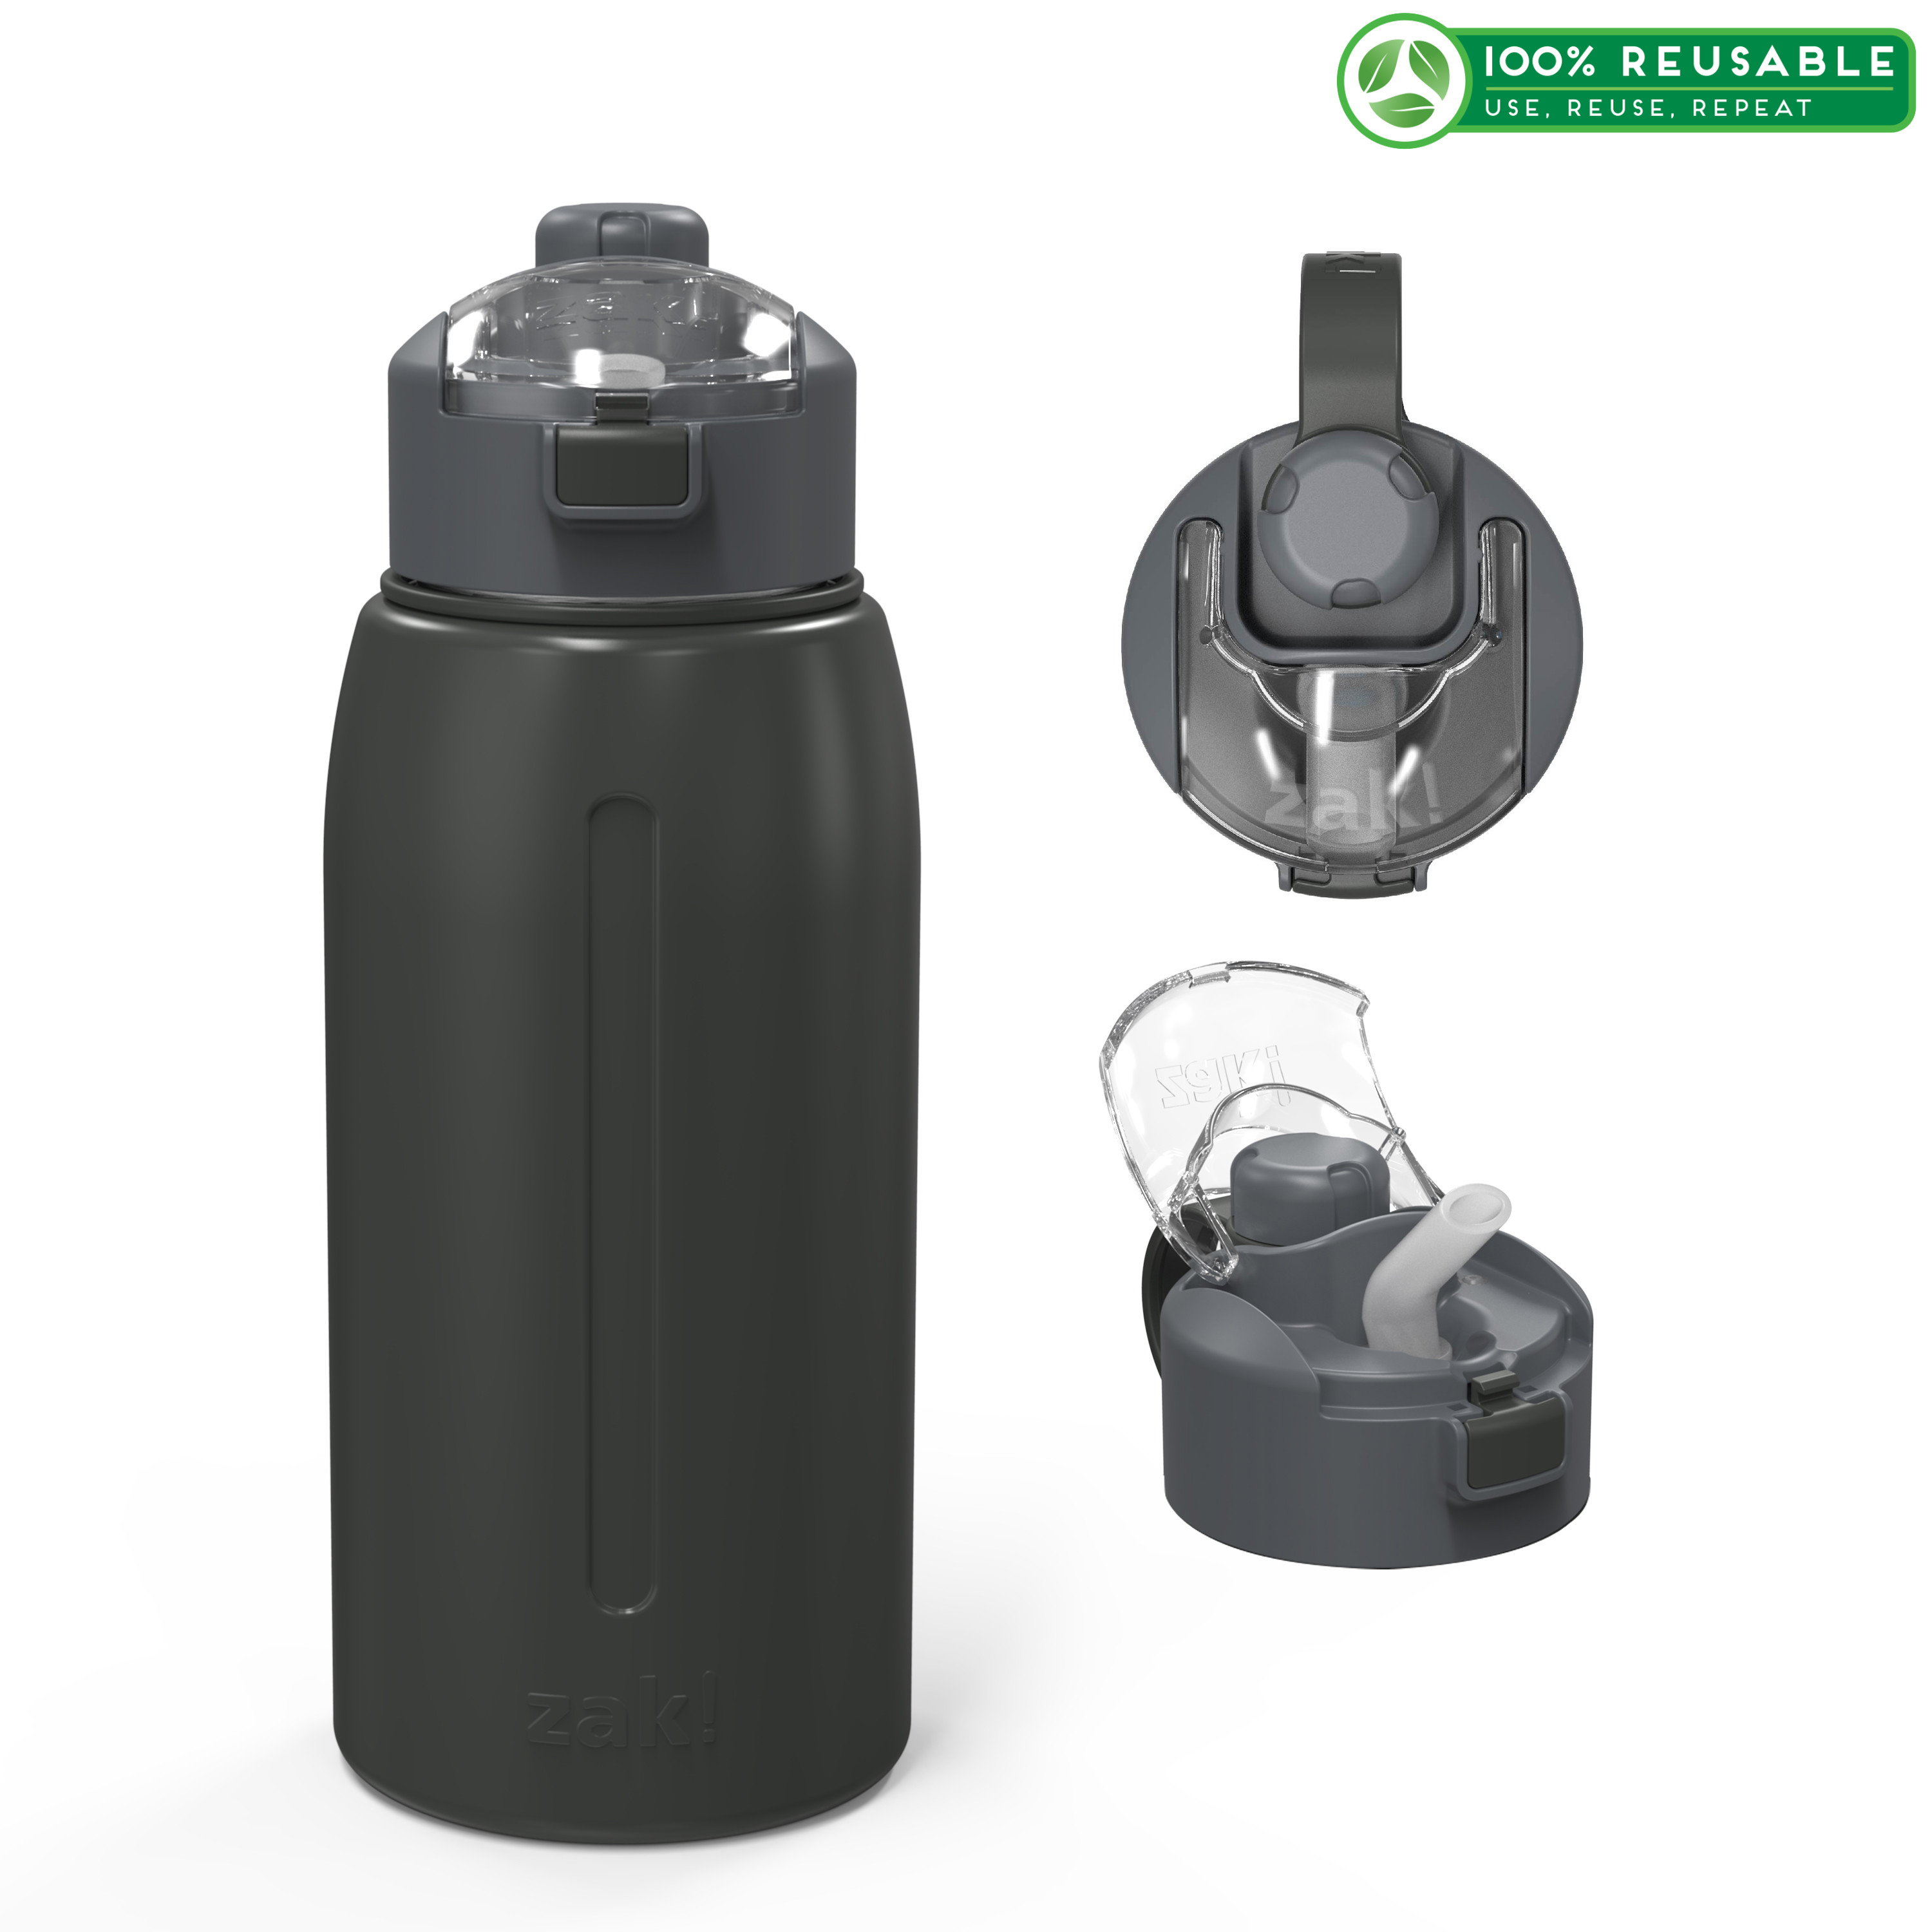 Genesis 32 ounce Vacuum Insulated Stainless Steel Tumbler, Charcoal slideshow image 1